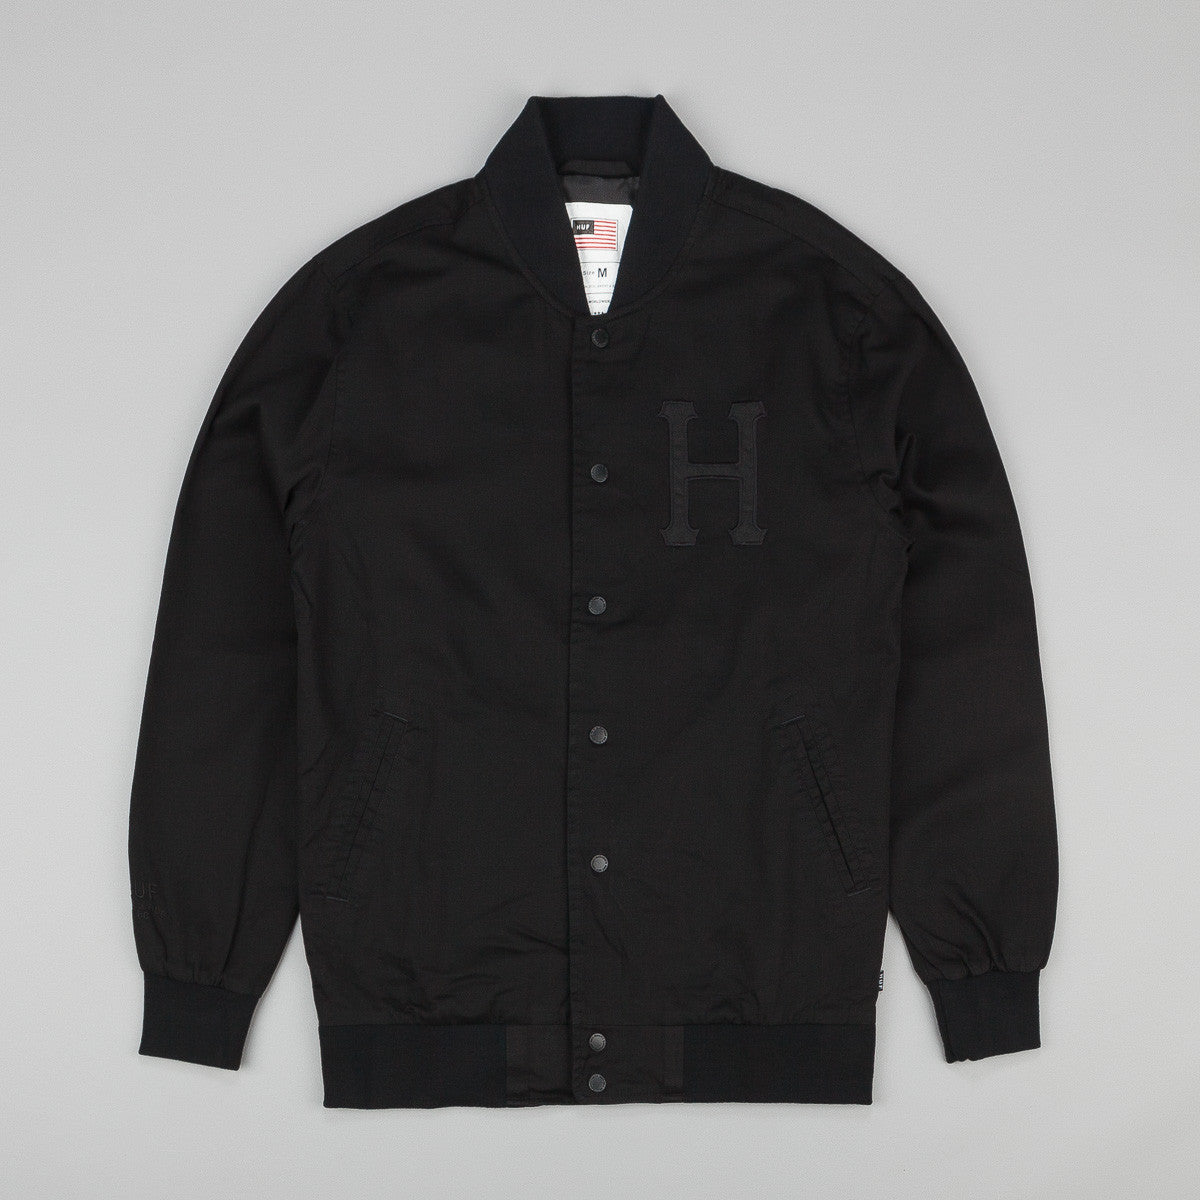 Huff x Thrasher Baseball Jacket - Black